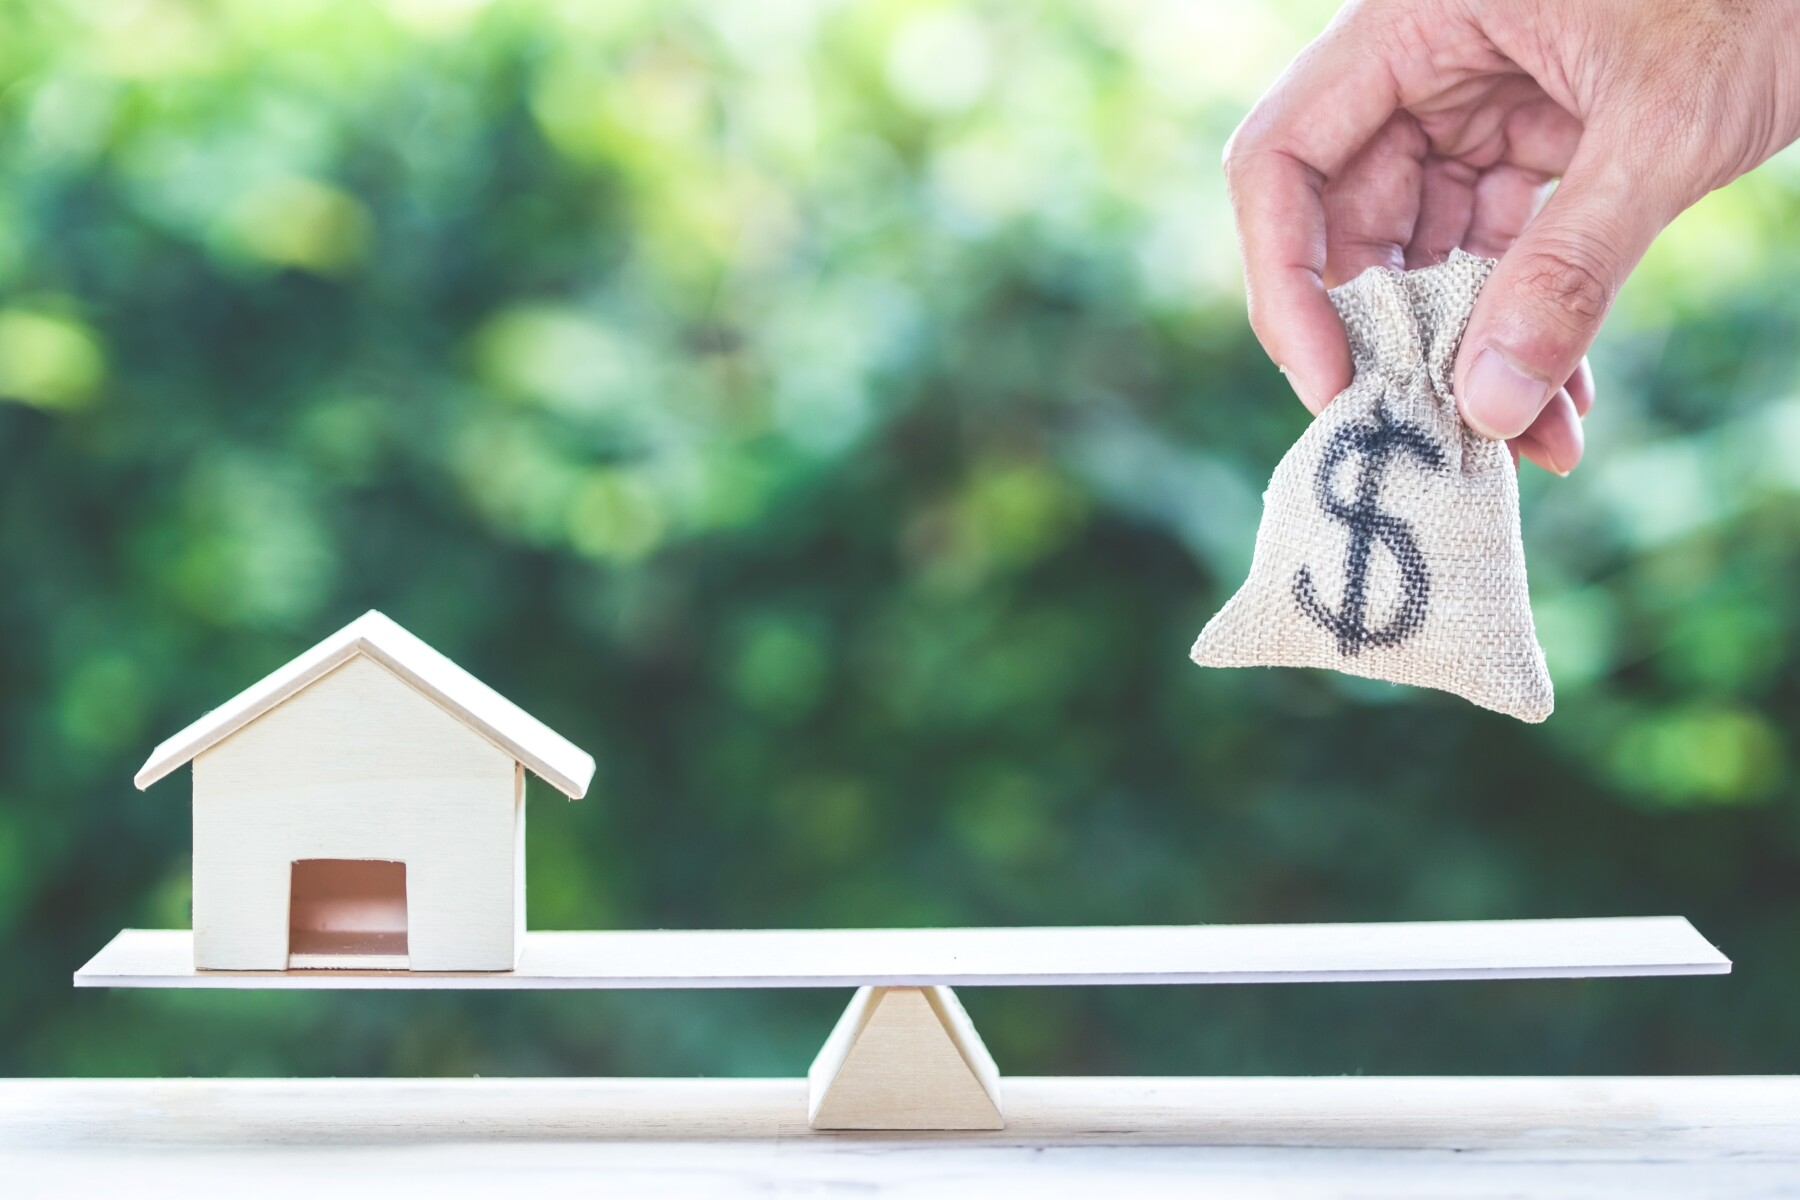 Balance home and money, home loan, reverse mortgage concept.